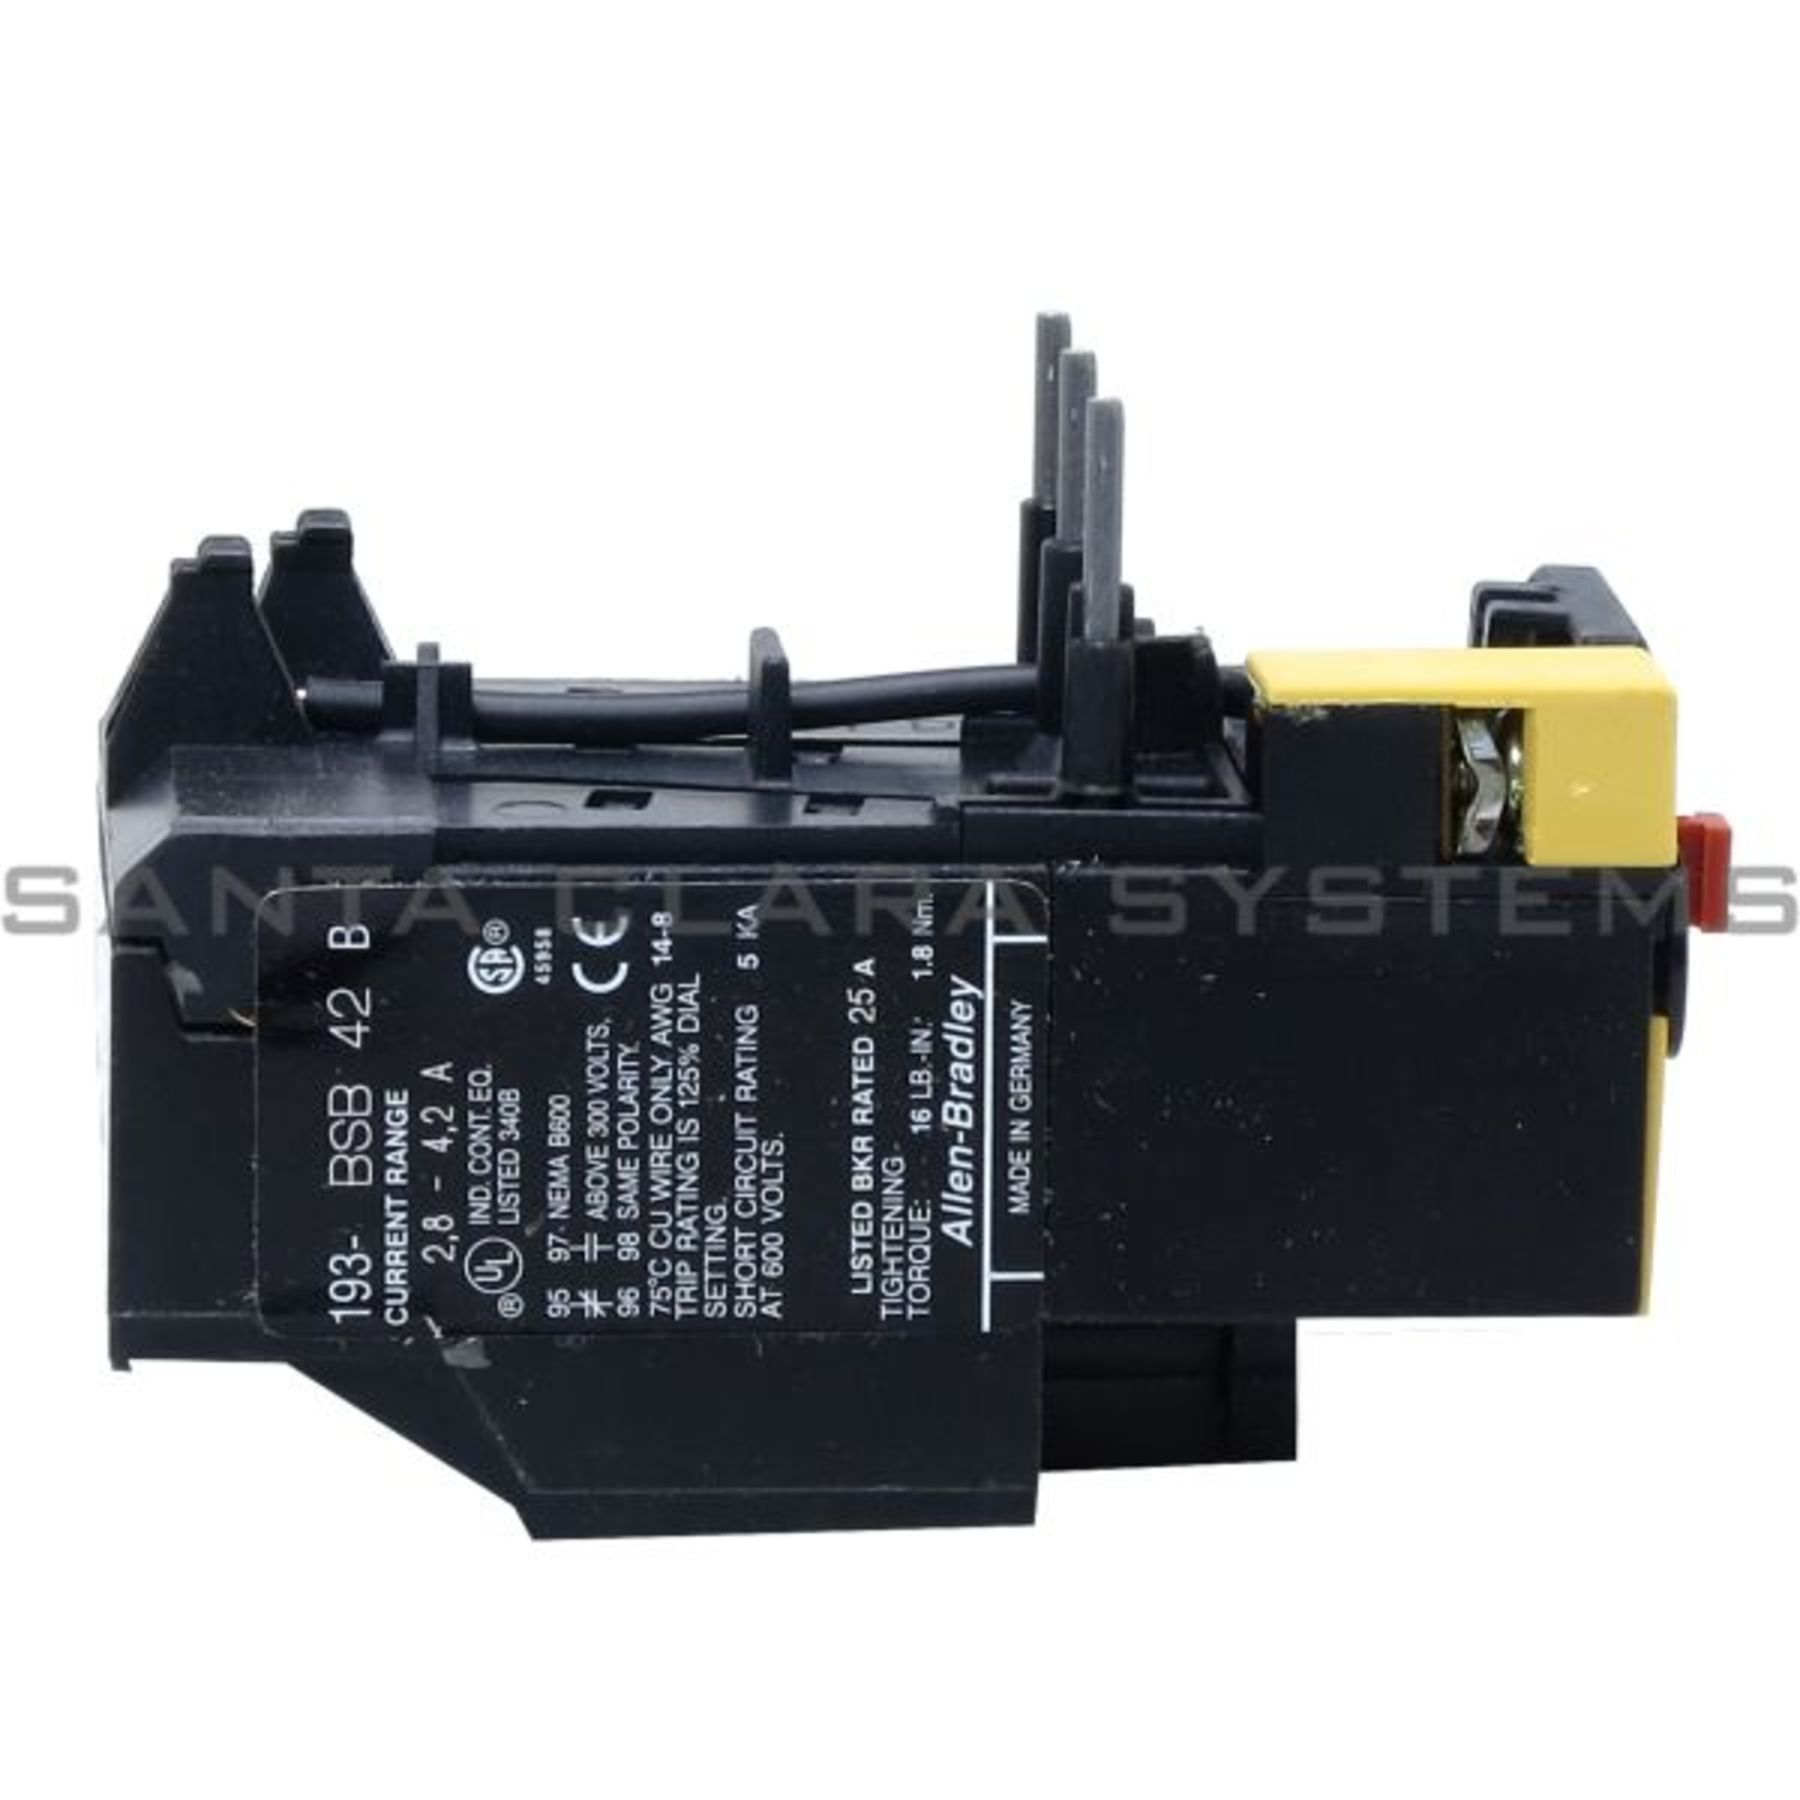 193 Bsb42 Allen Bradley In Stock And Ready To Ship Santa Clara Systems Current Rating For Relay Overload Product Image